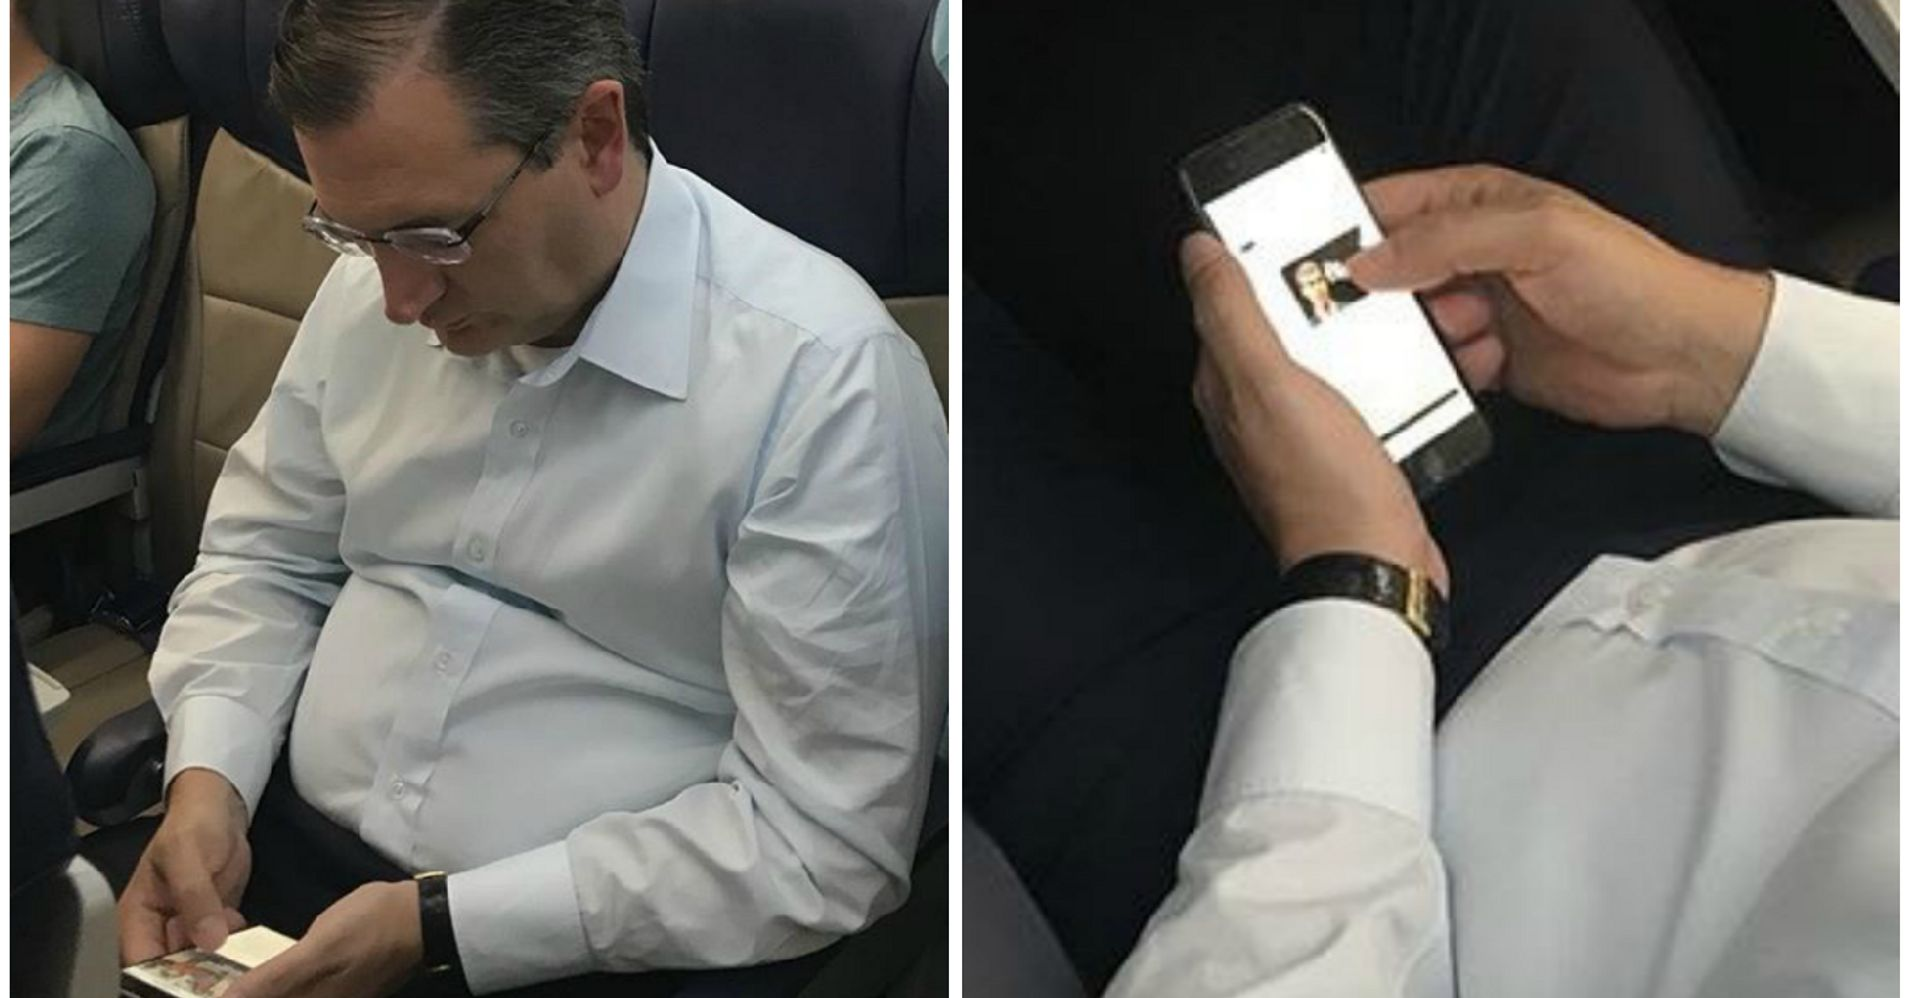 Ted Cruz Spotted On Flight Looking At Photo Of Senate Rival Beto O'Rourke | HuffPost